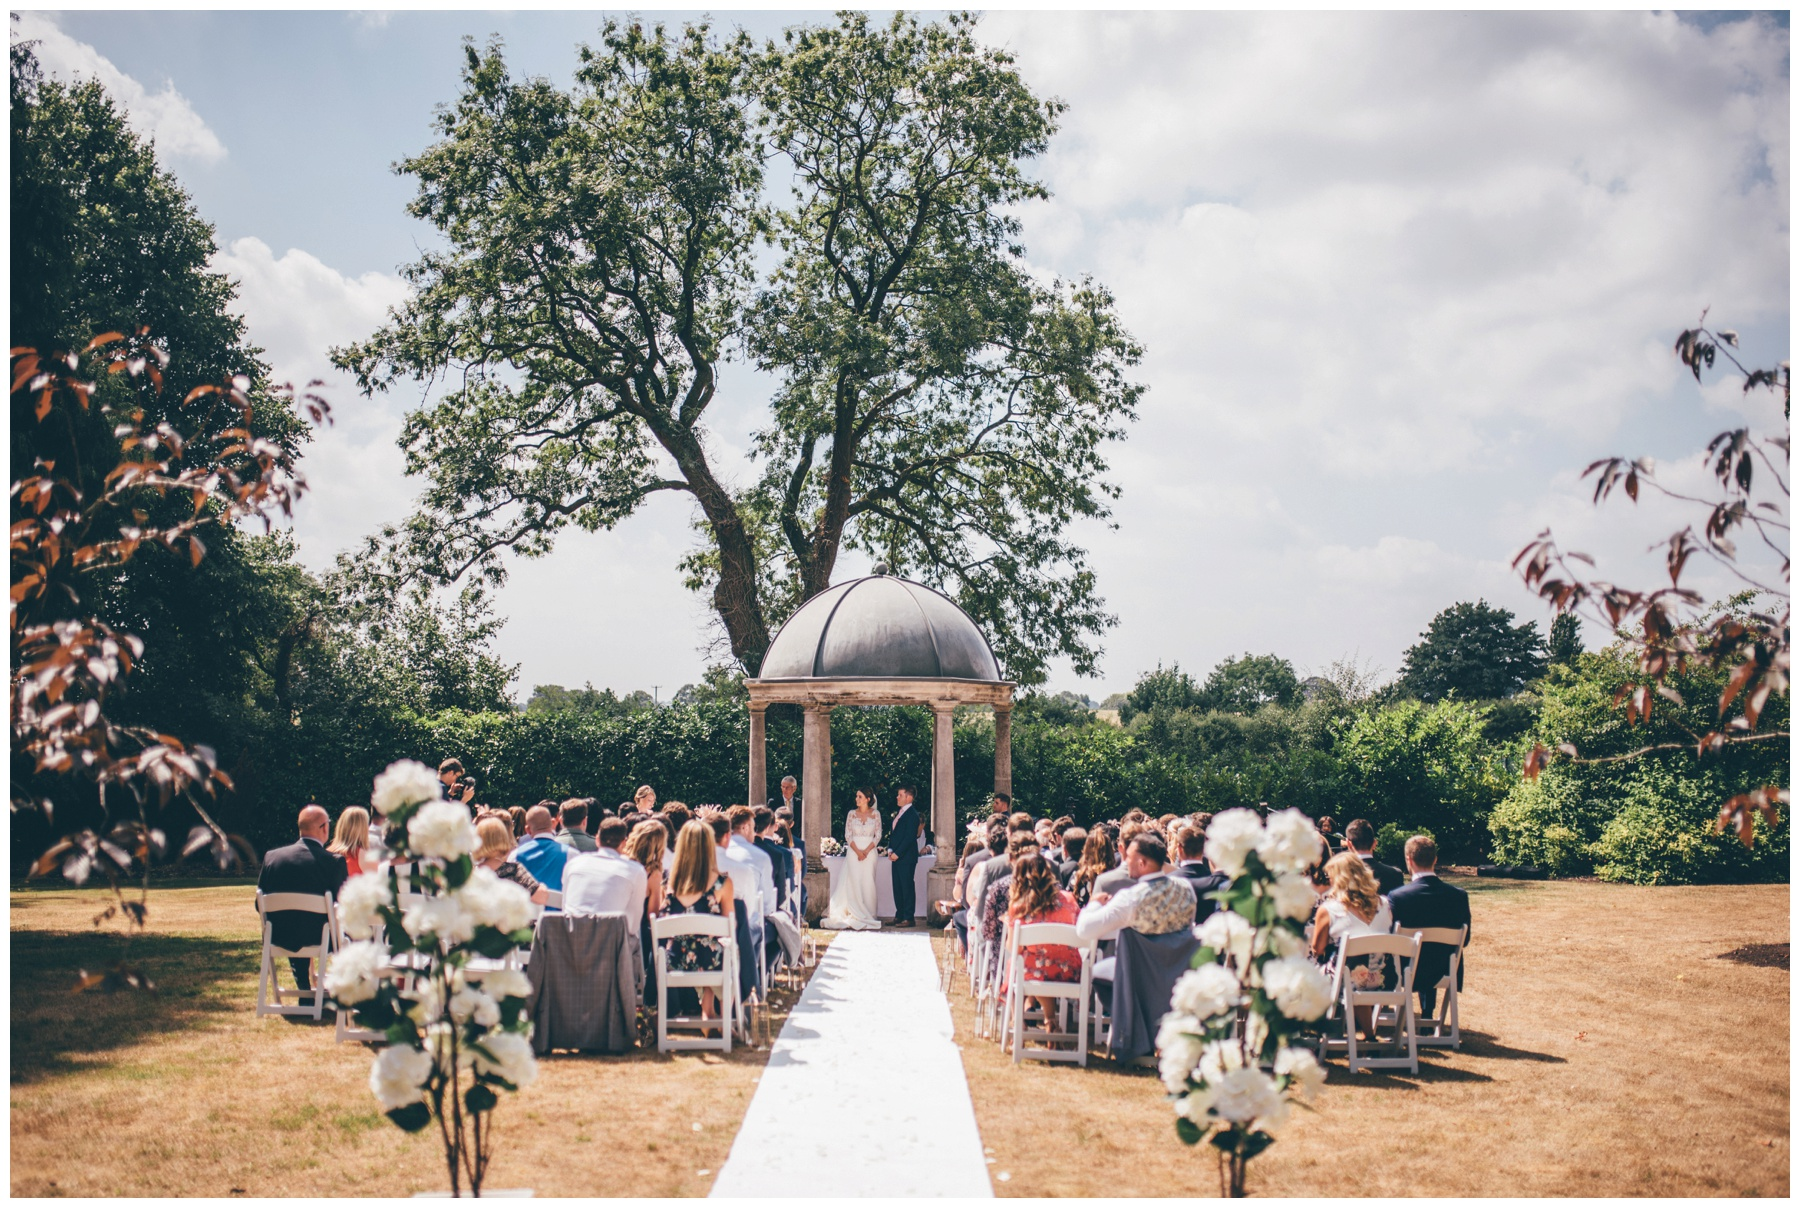 Bride and Groom become husband and wife in an outdoor wedding ceremony at Tilstone House in Tarporley, Cheshire.